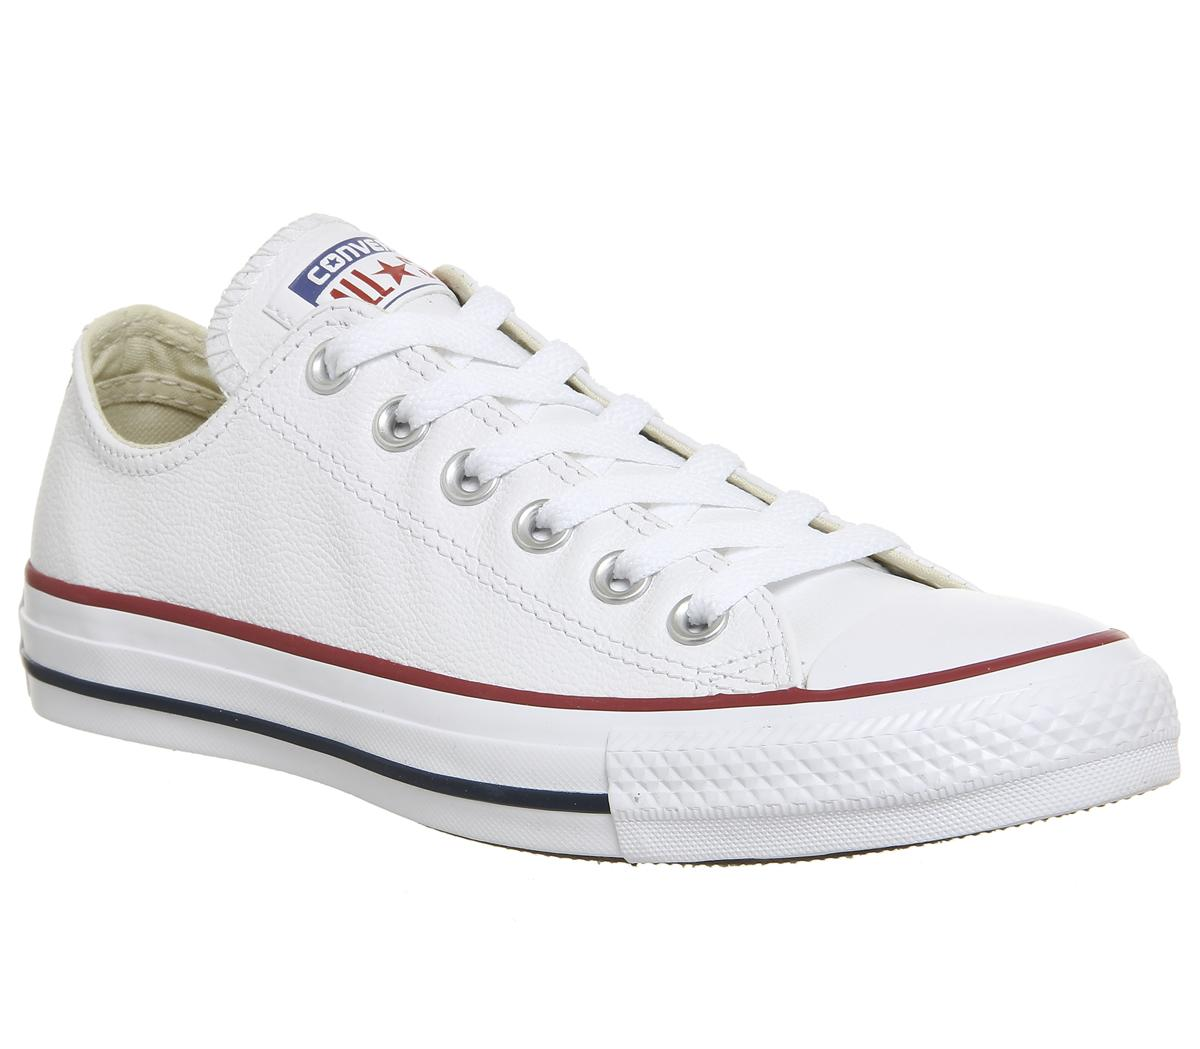 New Converse Chuck Taylor All Star Dainty Ox Lo Shoes UK 3-6.5  Black pumps